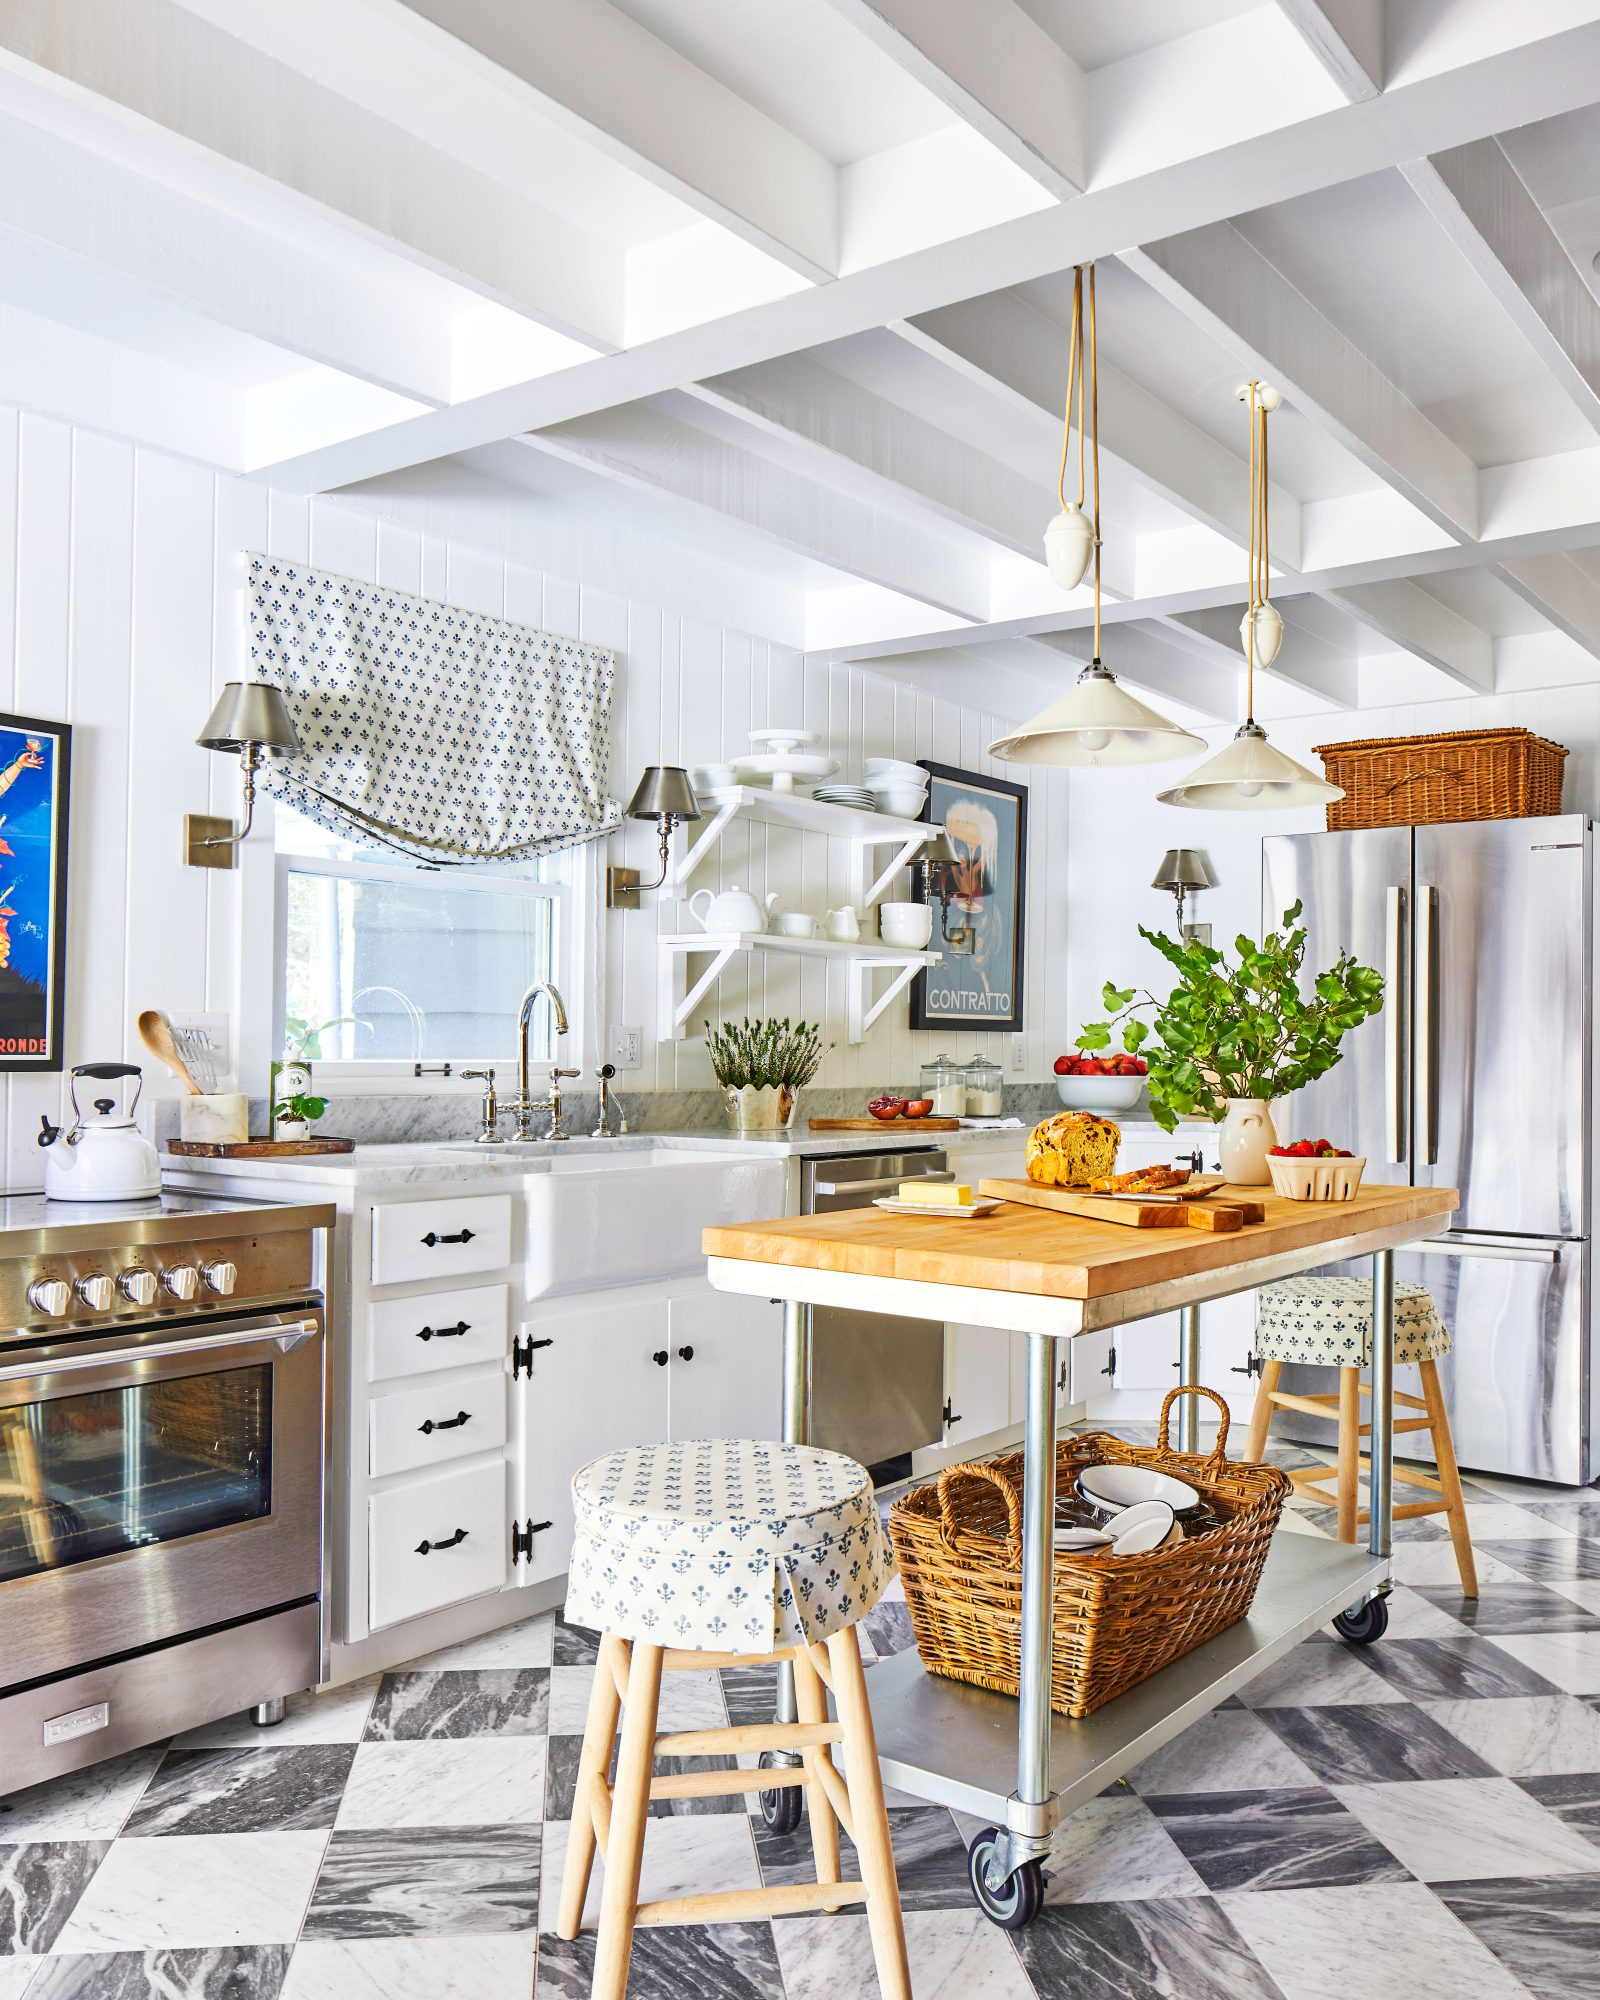 European Style Kitchen with opening shelving and moving island